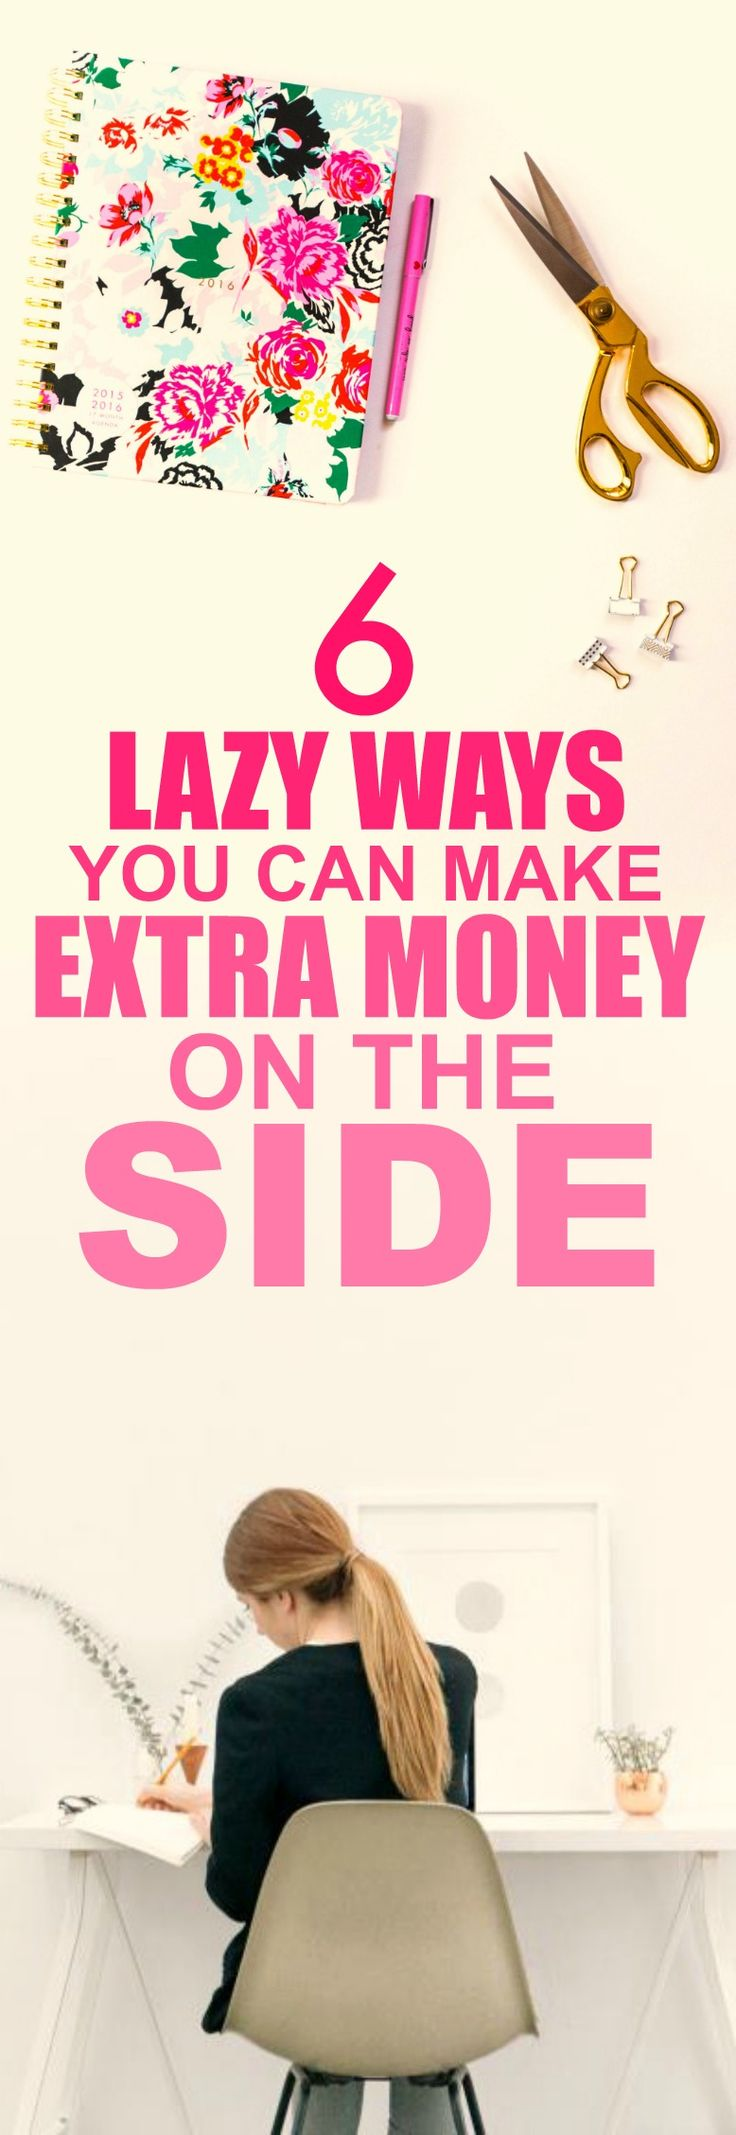 These 6 easy ways to make extra money on the side are THE BEST! I'm so glad I found this GREAT post! I've already tried one of them and I'm already making A TON of money each month! I'm SO pinning for later!